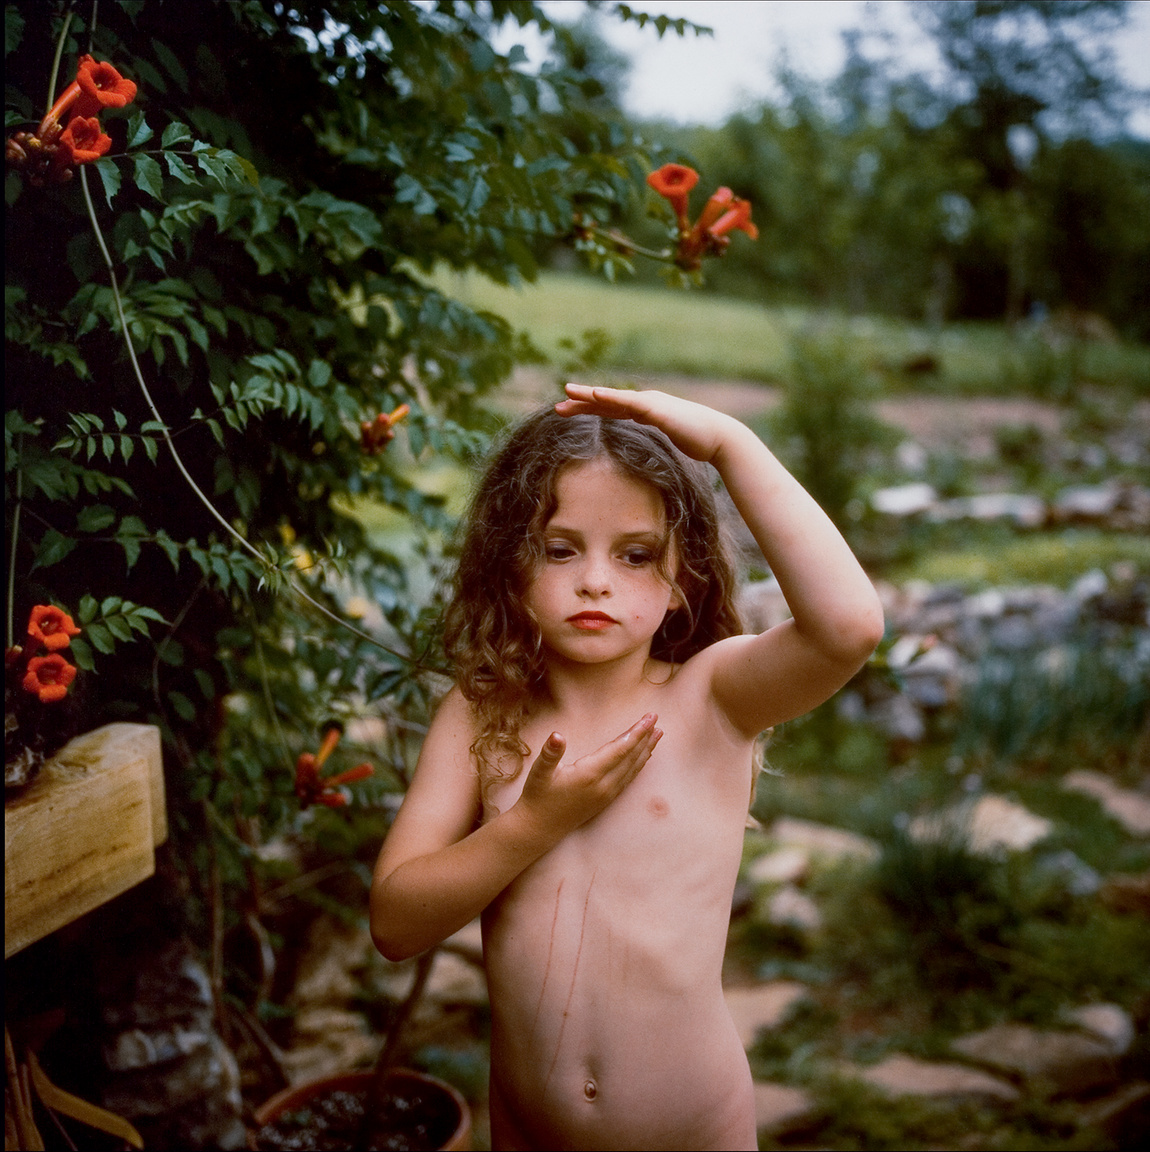 Untitled (Virginia with Trumpet Vine)                         1991                         Silver dye bleach print                         Solomon R. Guggenheim Museum New York Gift The Bohen Foundation 2001                         2001.204                          Sally Mann                         Photography